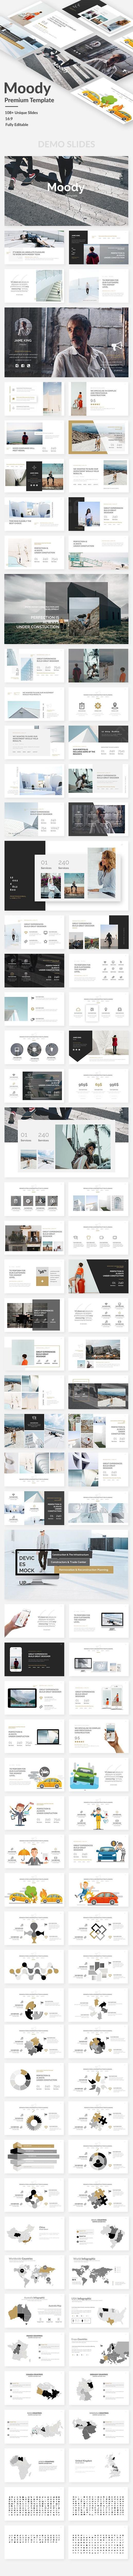 Moody Creative Powerpoint Template | Creative powerpoint, Template ...